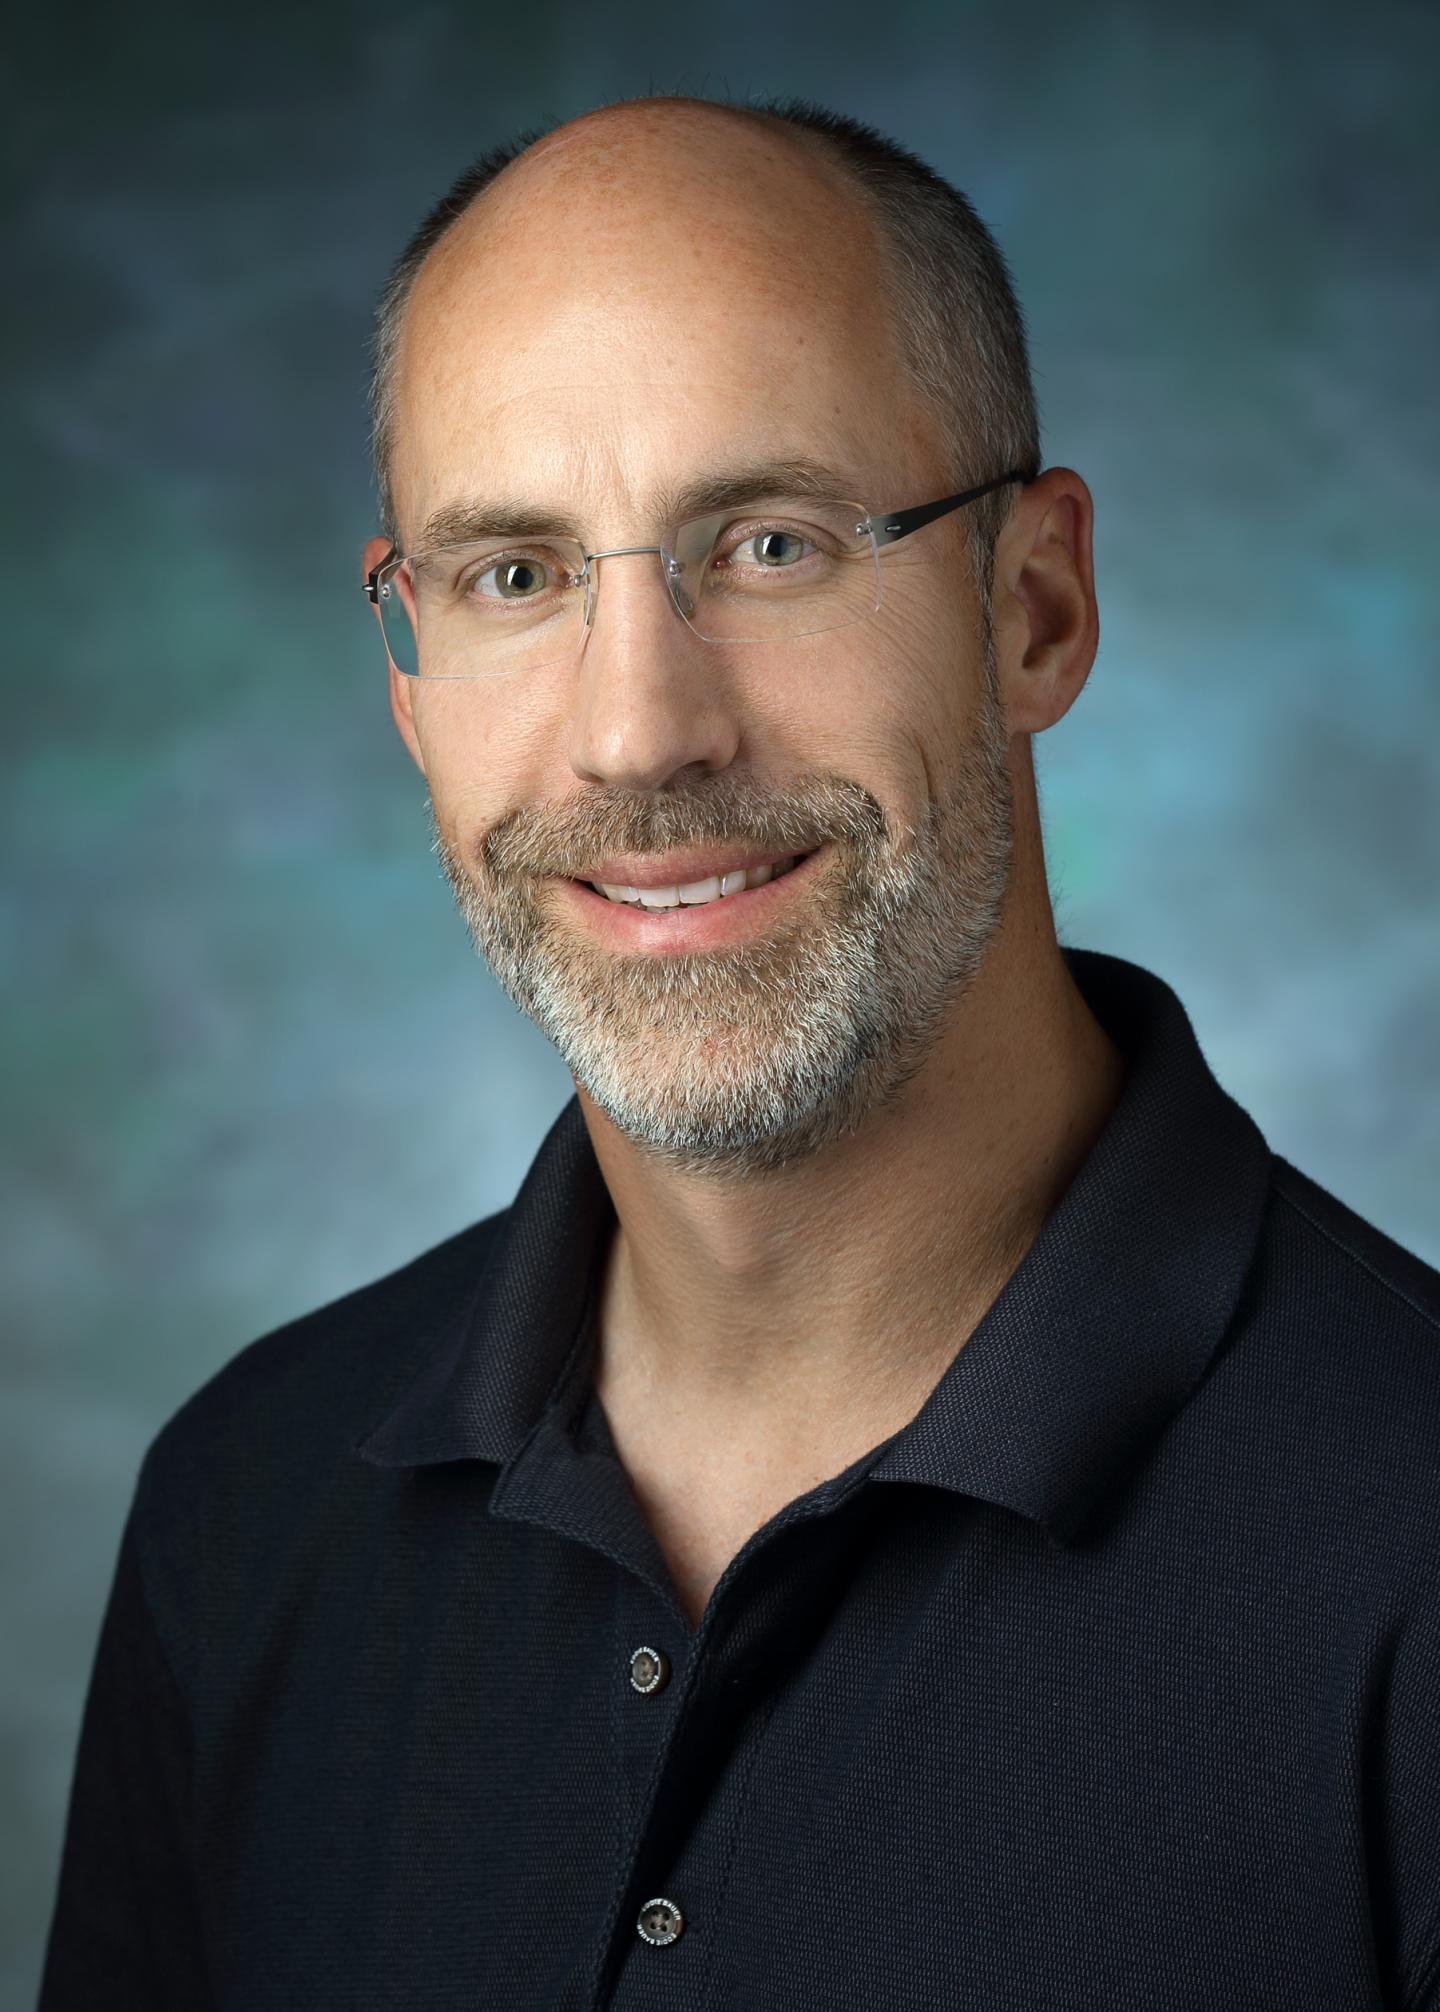 Dwight E. Bergles of Johns Hopkins wins Barancik Prize for Innovation in MS Research